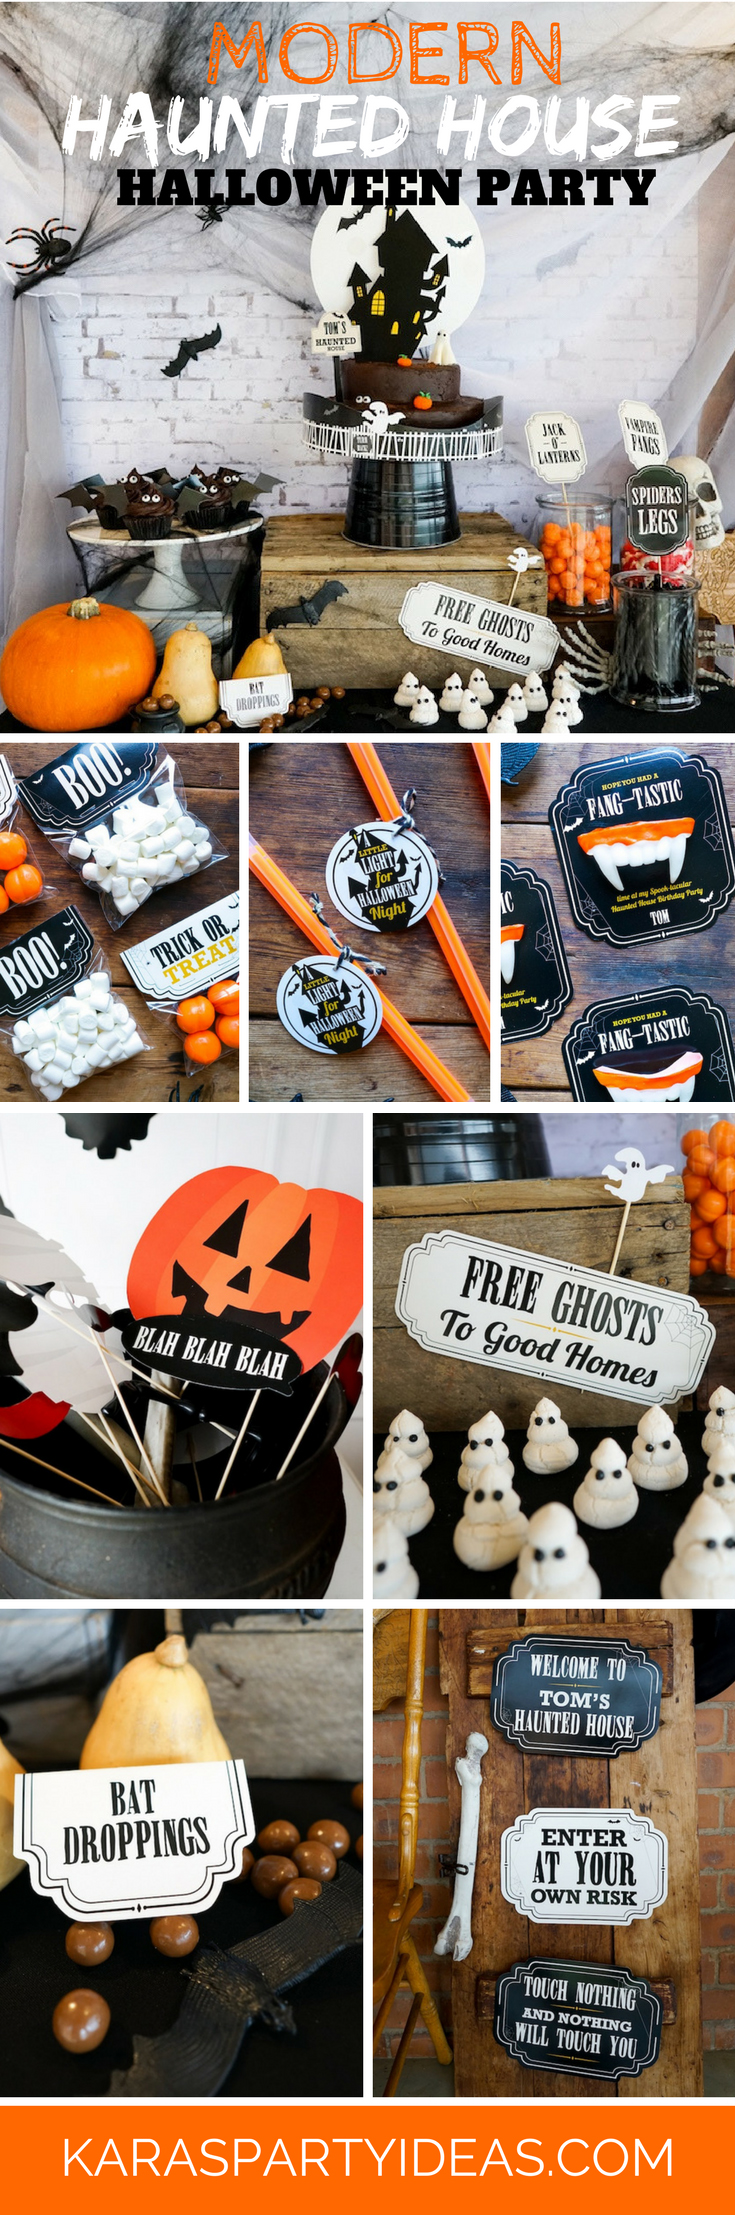 Modern Haunted House Halloween Party via Kara's Party Ideas | KarasPartyIdeas.com